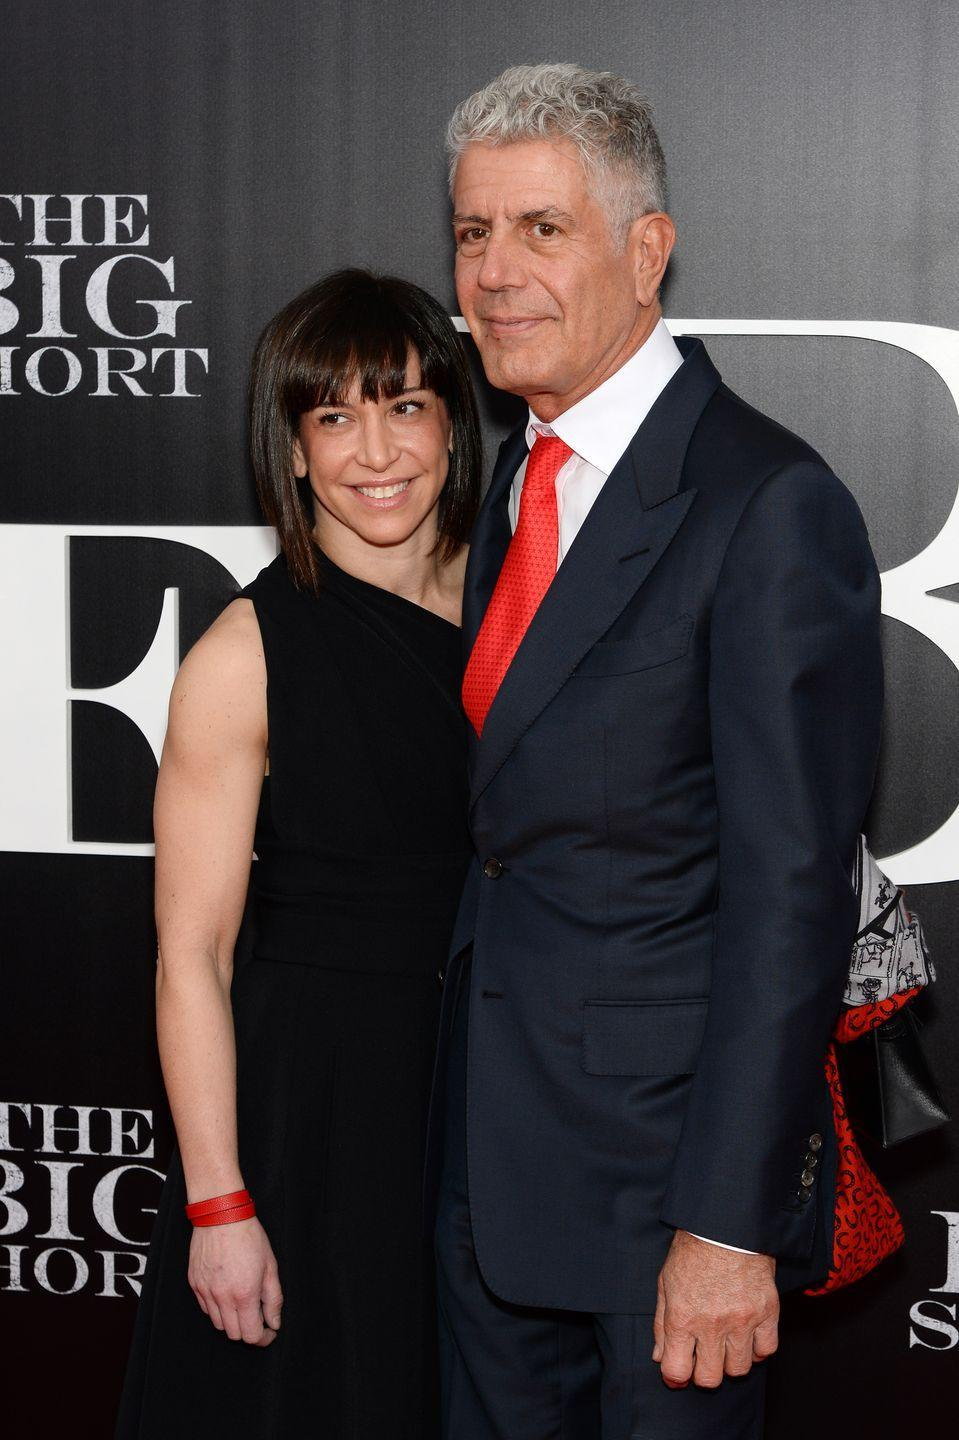 """<p>Bourdain's second wife, Ottavia, was a hostess at one of Ripert's restaurants when her whirlwind romance with Bourdain began. On their second date, the pair got matching tattoos of a chef's knife, and after their daughter Ariane born in 2007, they tied the knot within 11 days. The pair split in 2016, but remain on good terms, despite the <a href=""""http://www.esquire.com/lifestyle/news/a53303/anthony-bourdain-new-girlfriend-asia-argento/"""" rel=""""nofollow noopener"""" target=""""_blank"""" data-ylk=""""slk:new woman"""" class=""""link rapid-noclick-resp"""">new woman</a> in Bourdain's life.</p>"""